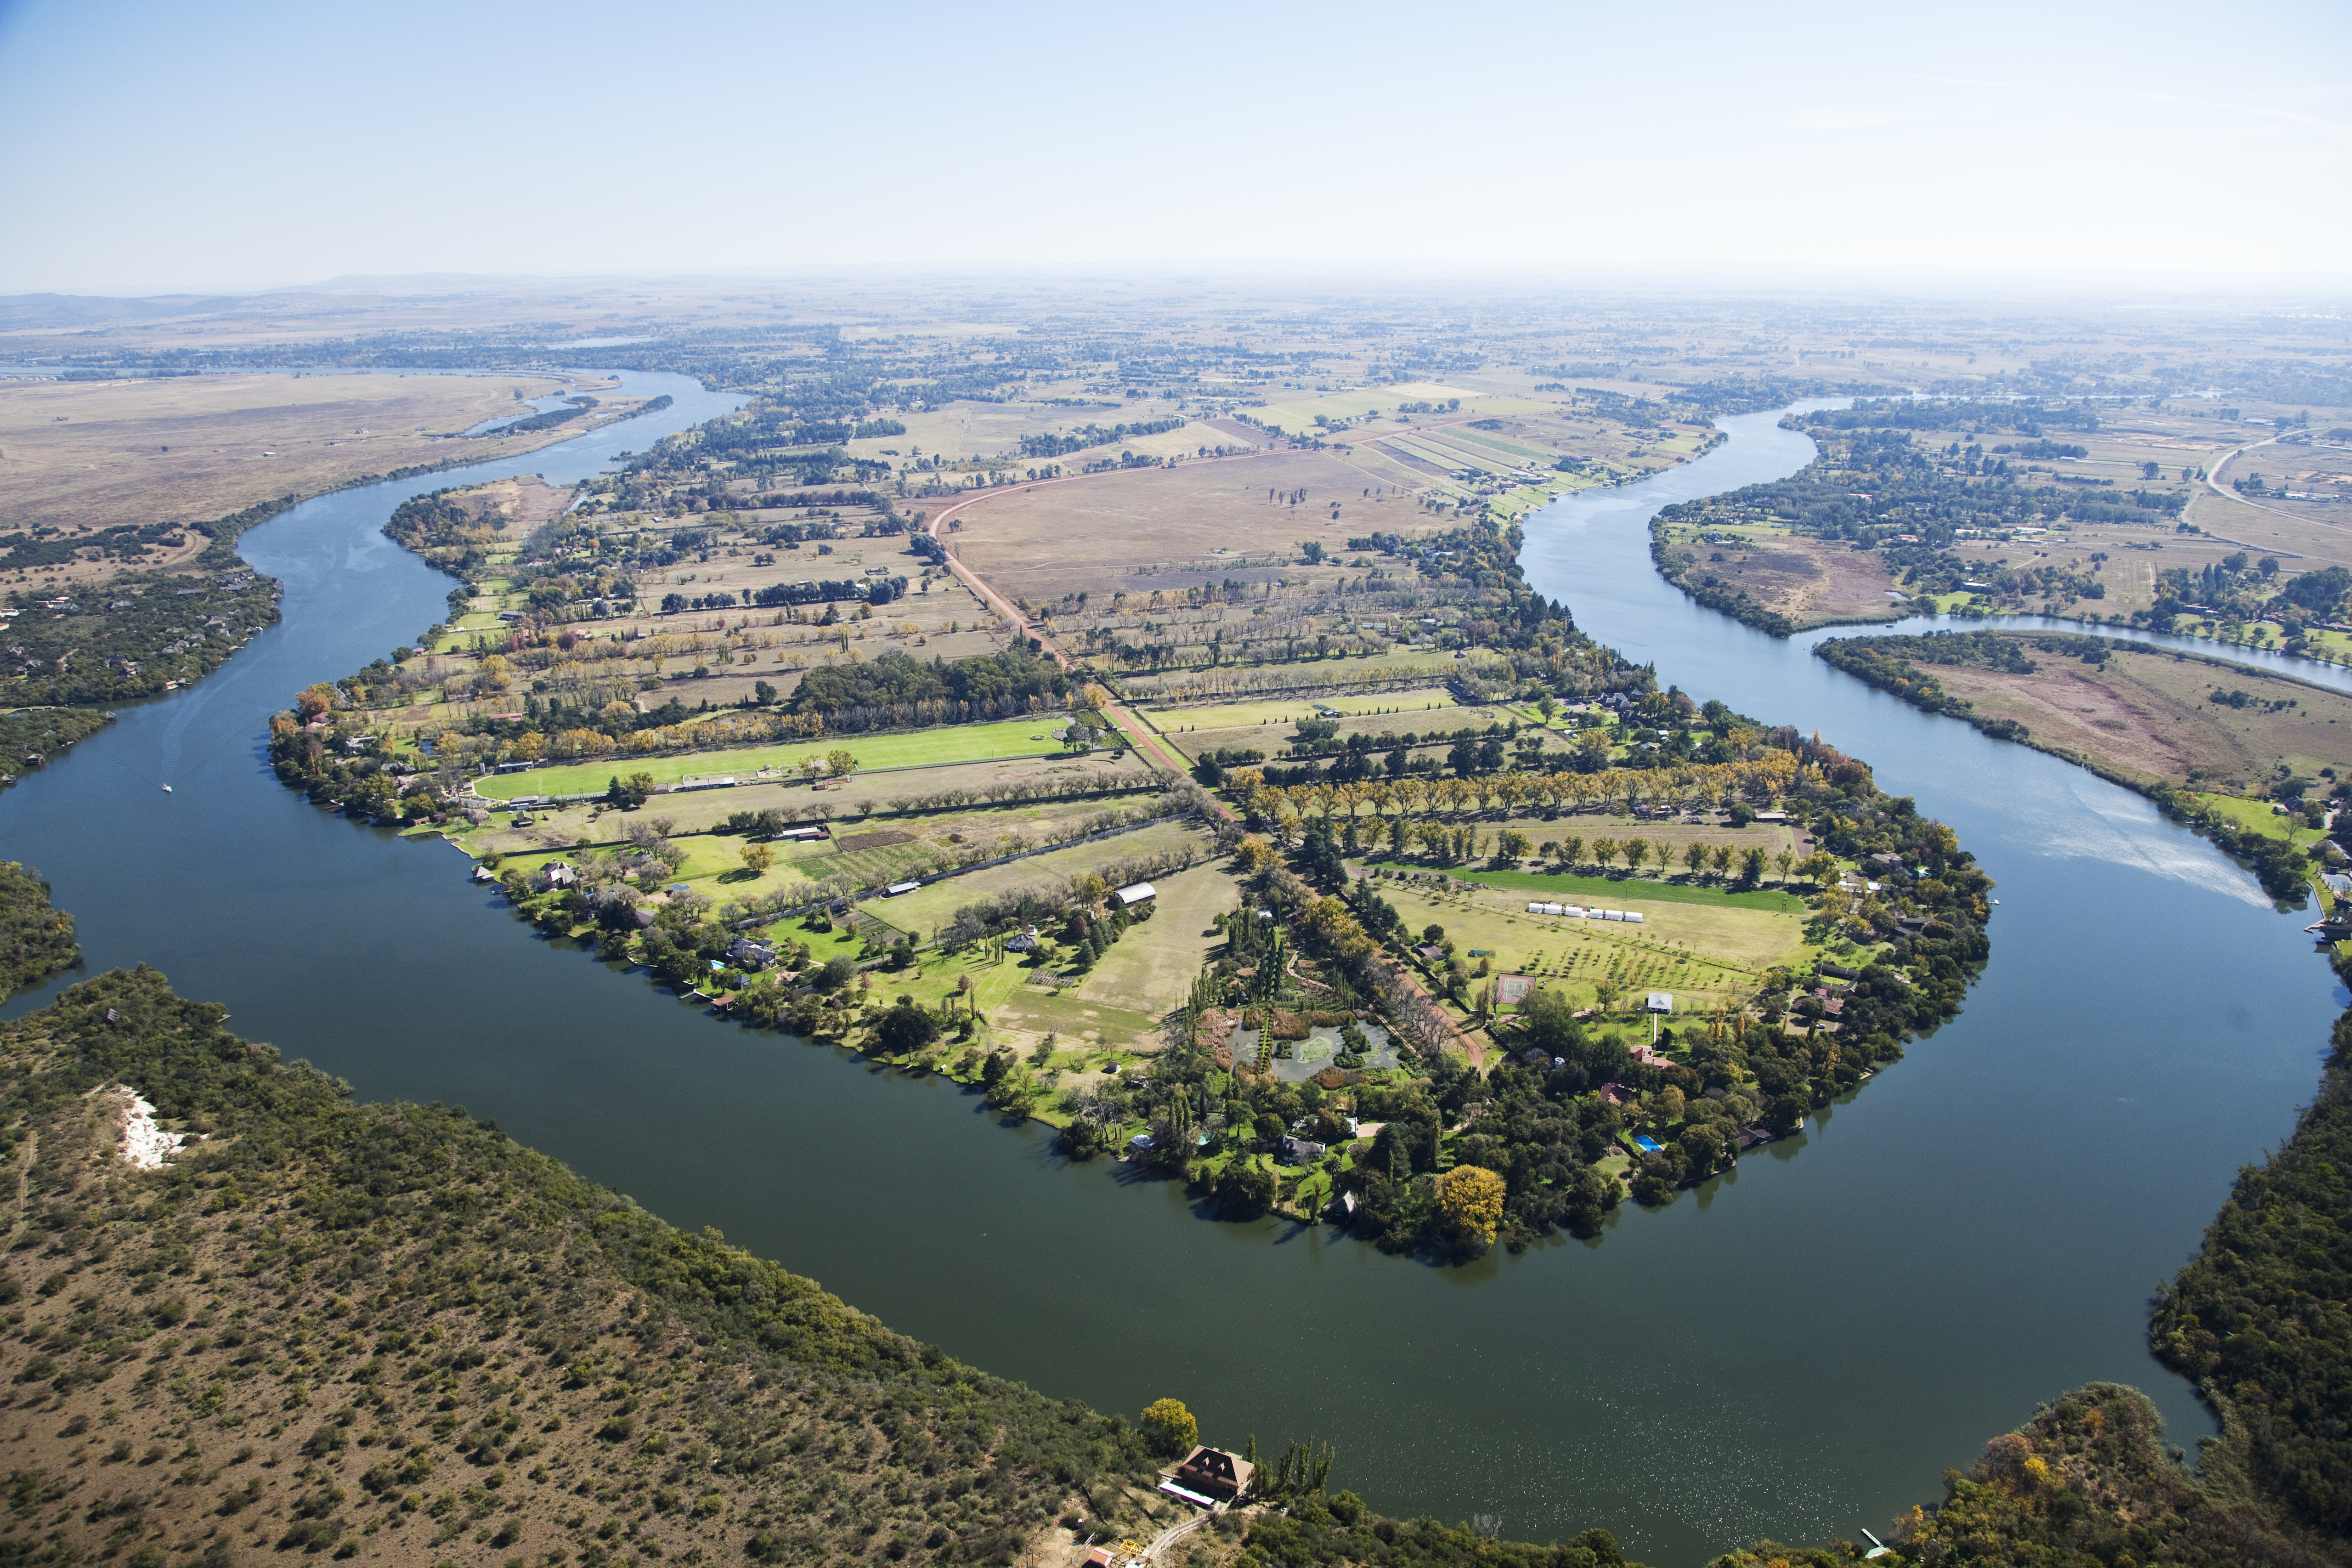 Vaal River, Aerial view, Gauteng Province, Free State Province, South Africa